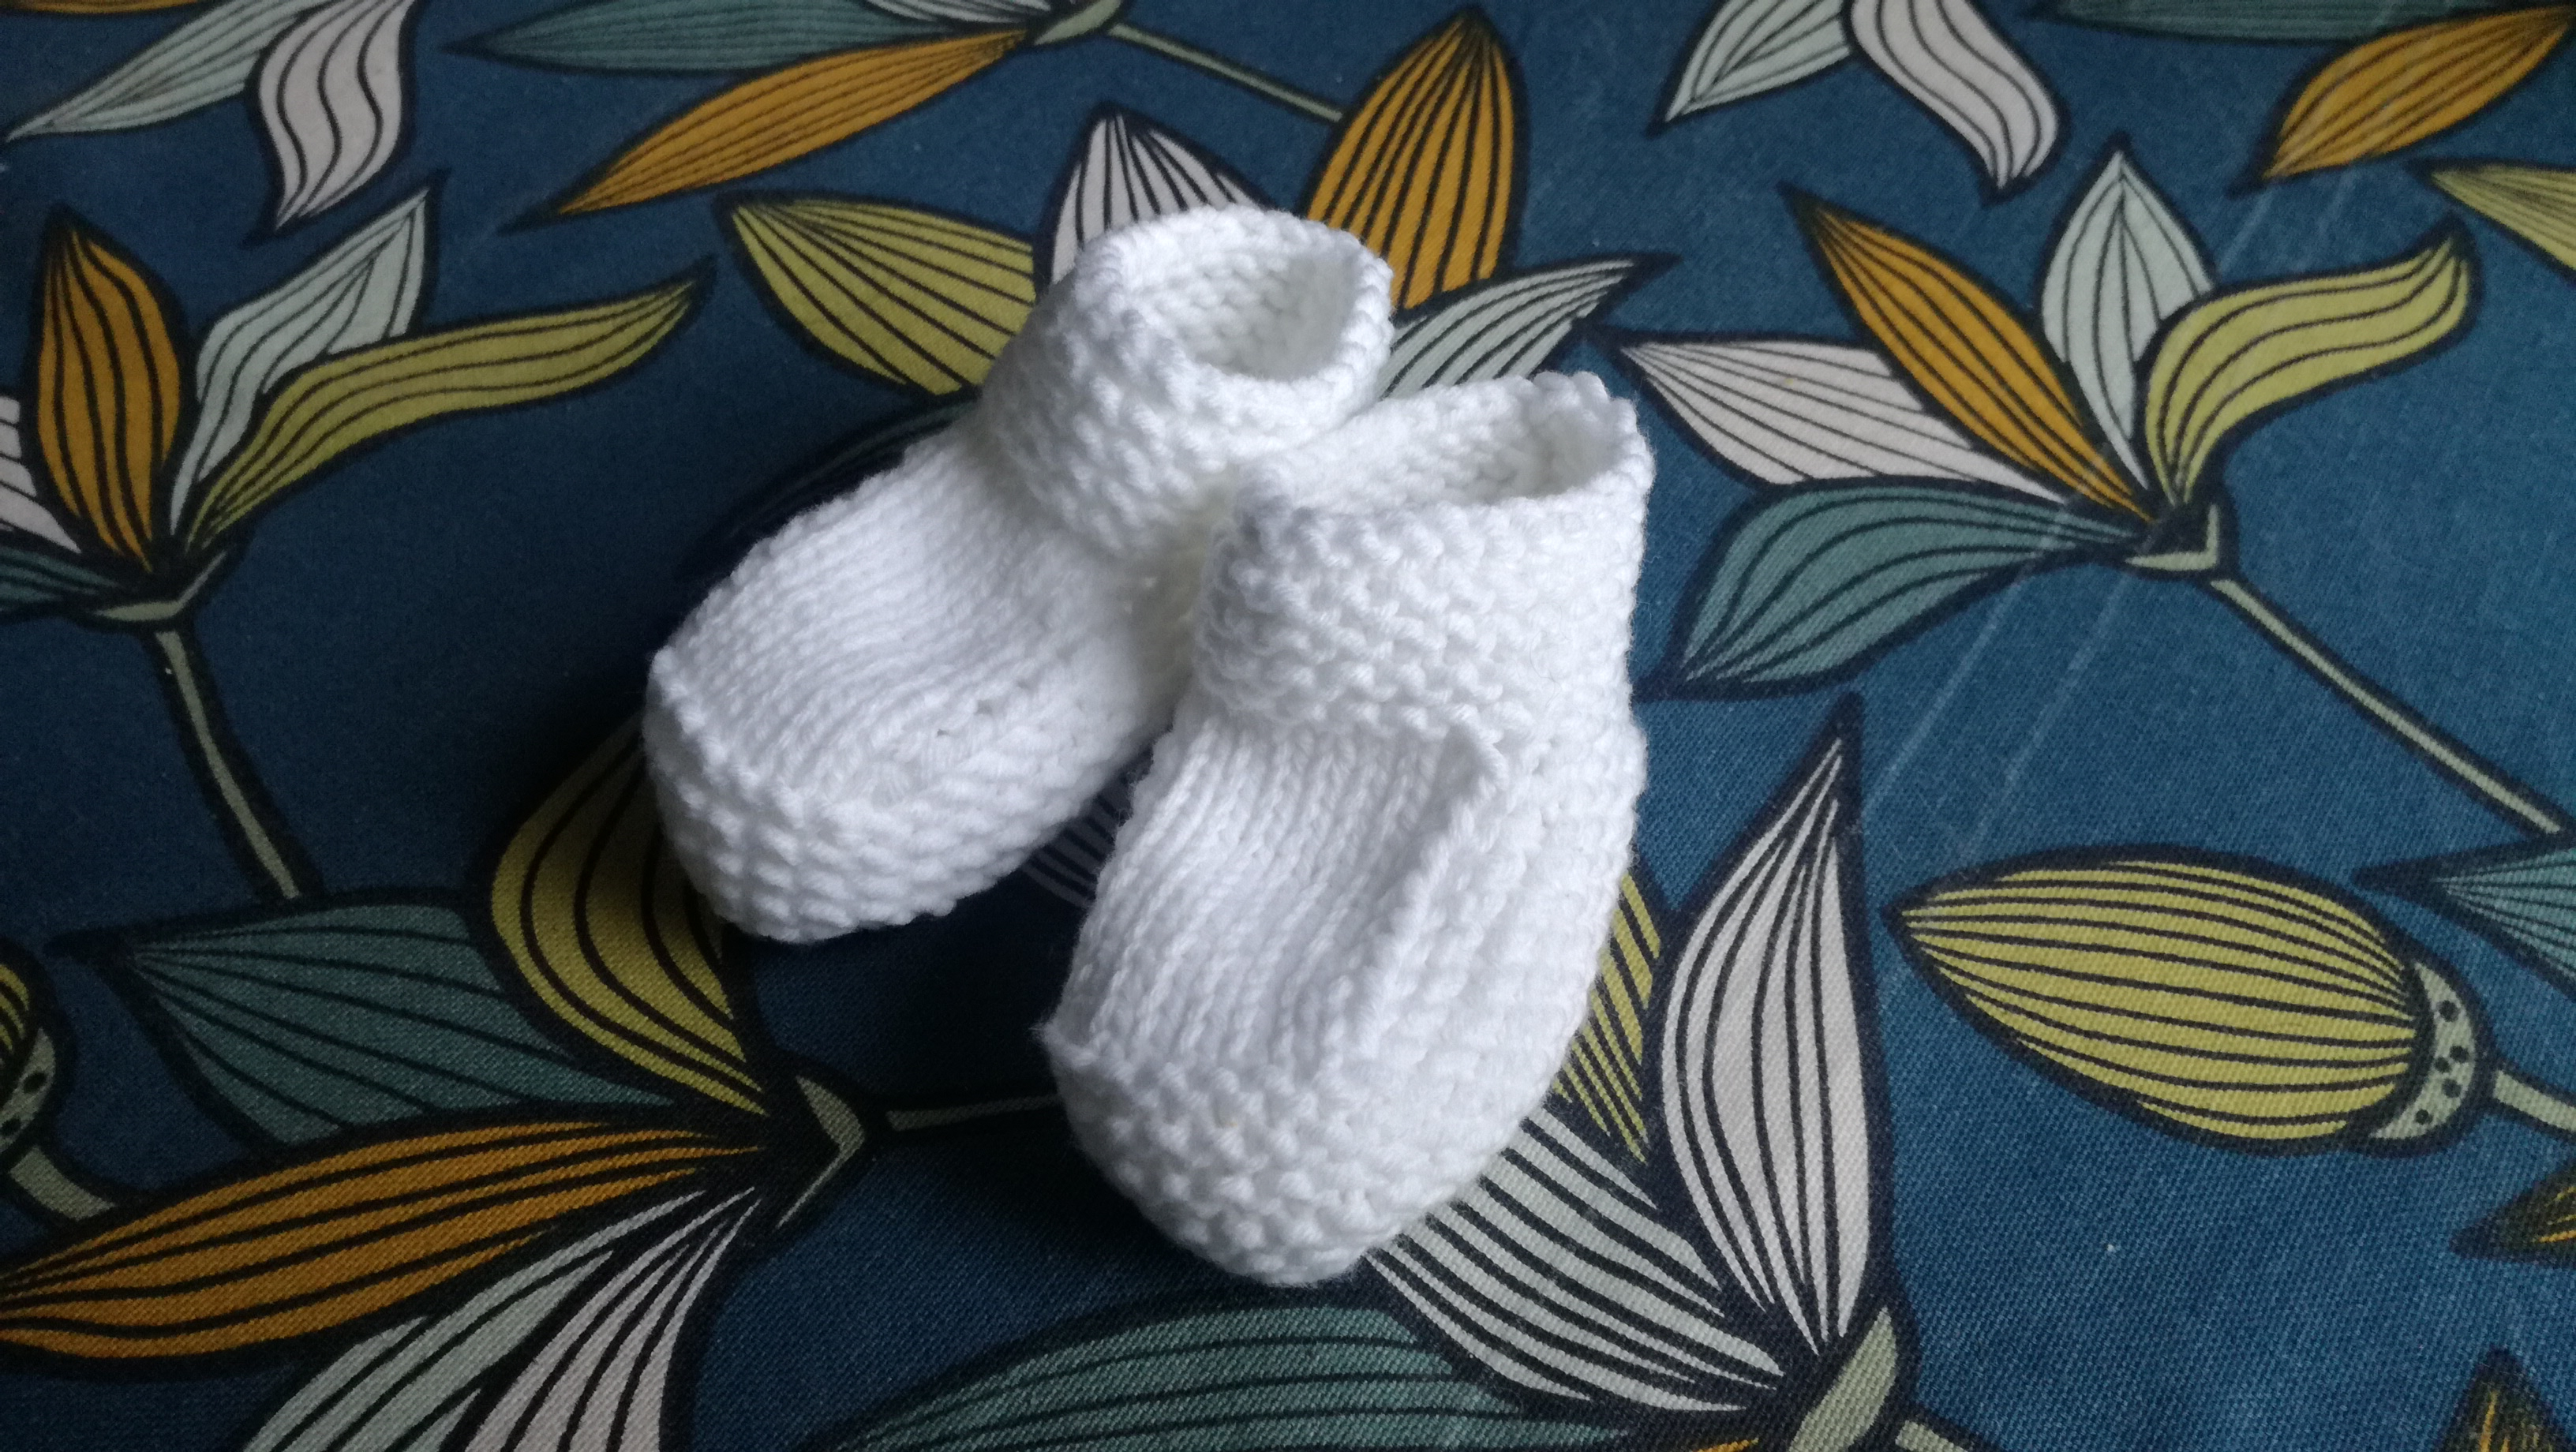 patron chaussons bébé tricot layette point mousse